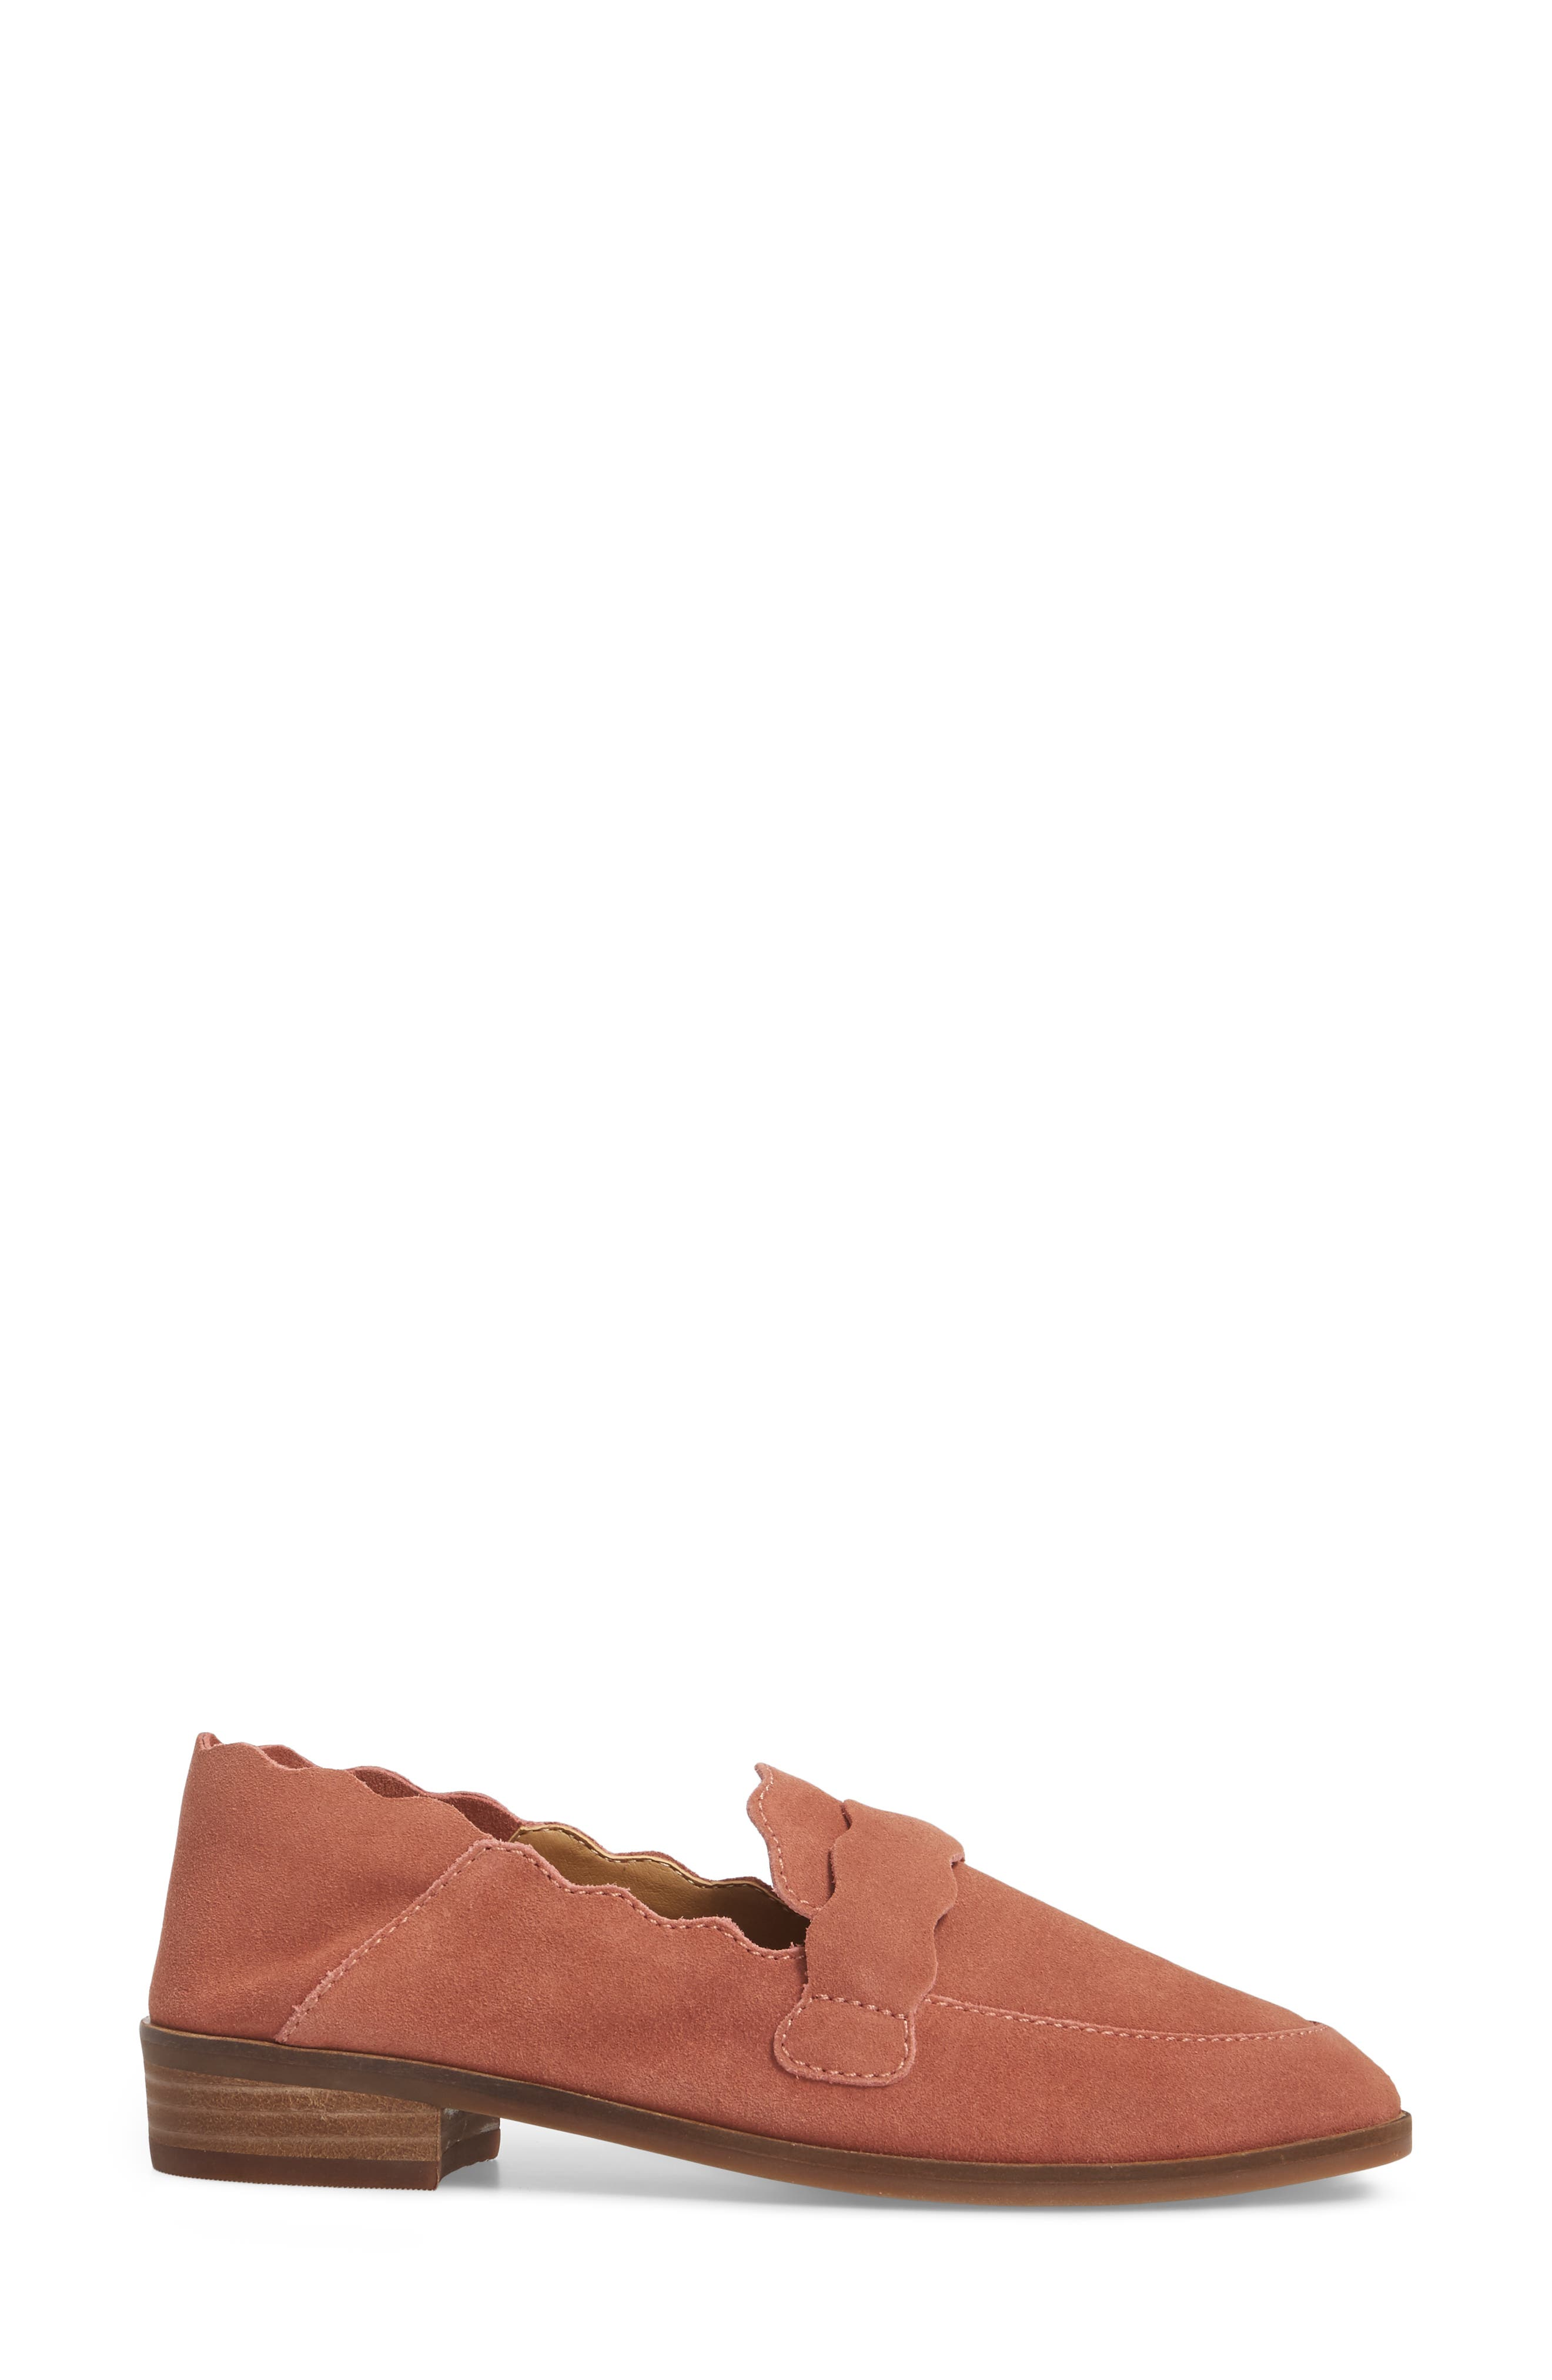 Callister Loafer,                             Alternate thumbnail 3, color,                             Canyon Rose Suede